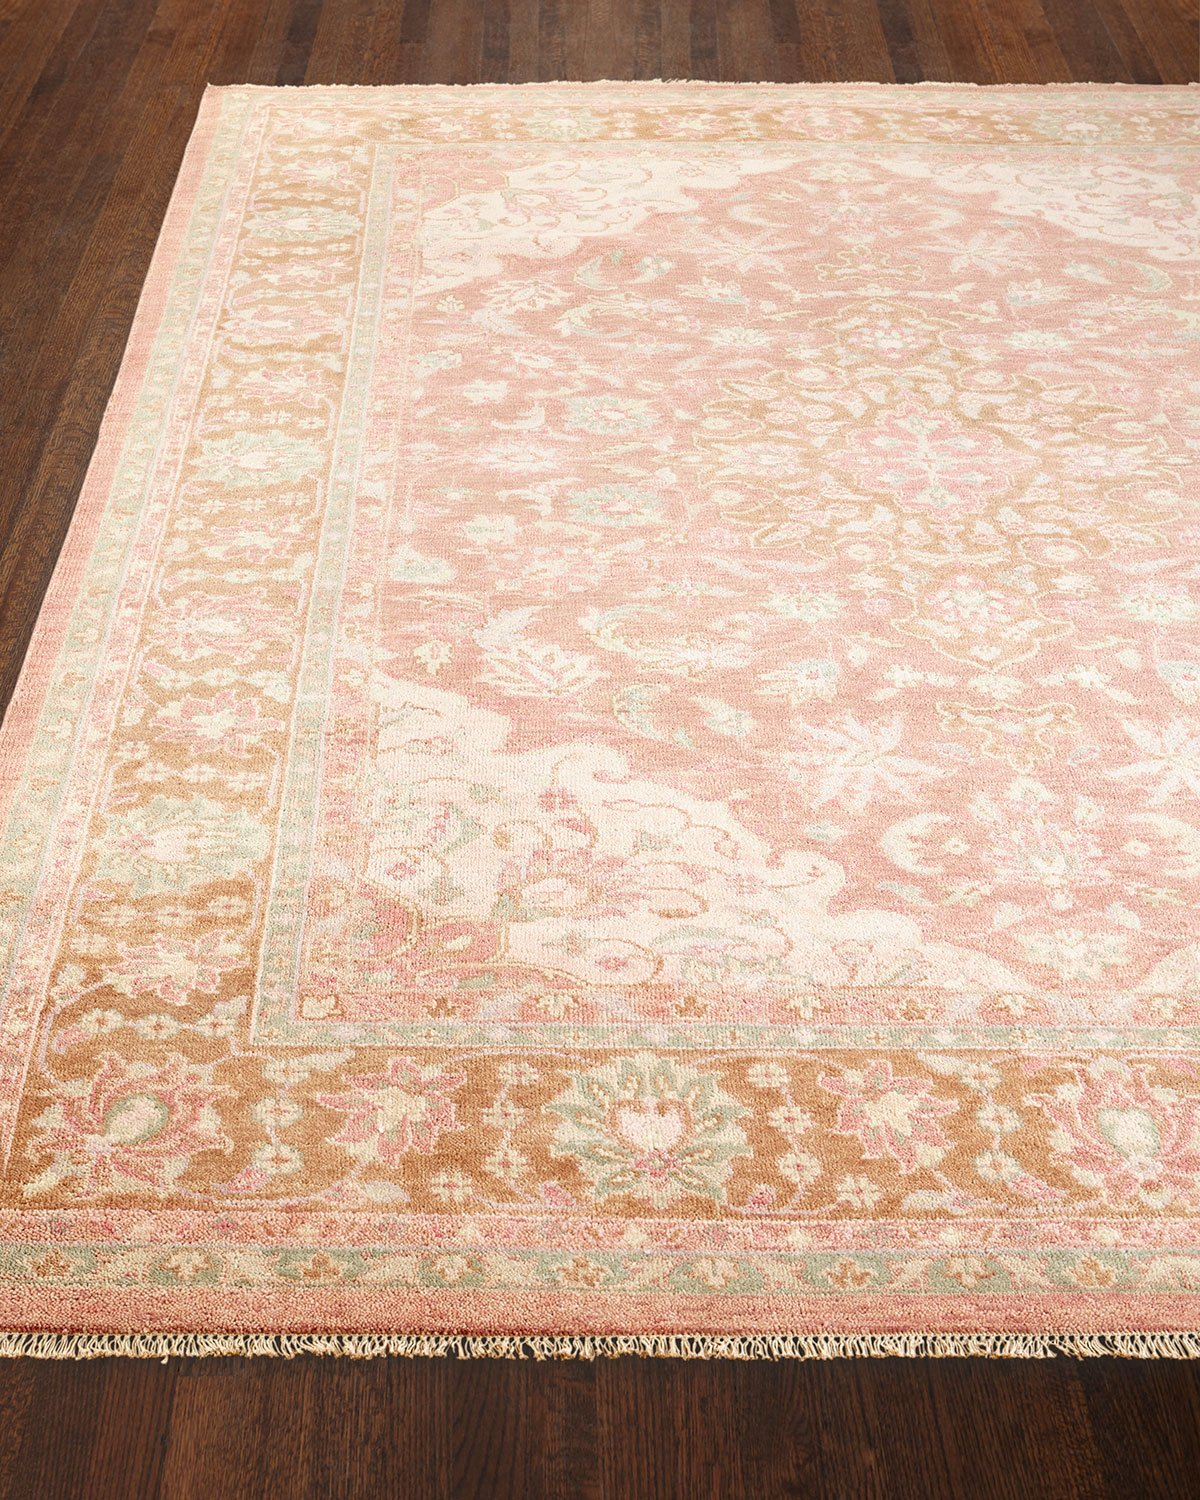 "Tammi Hand-Knotted Rug, 5'6"" x 8'6"" Product Image"